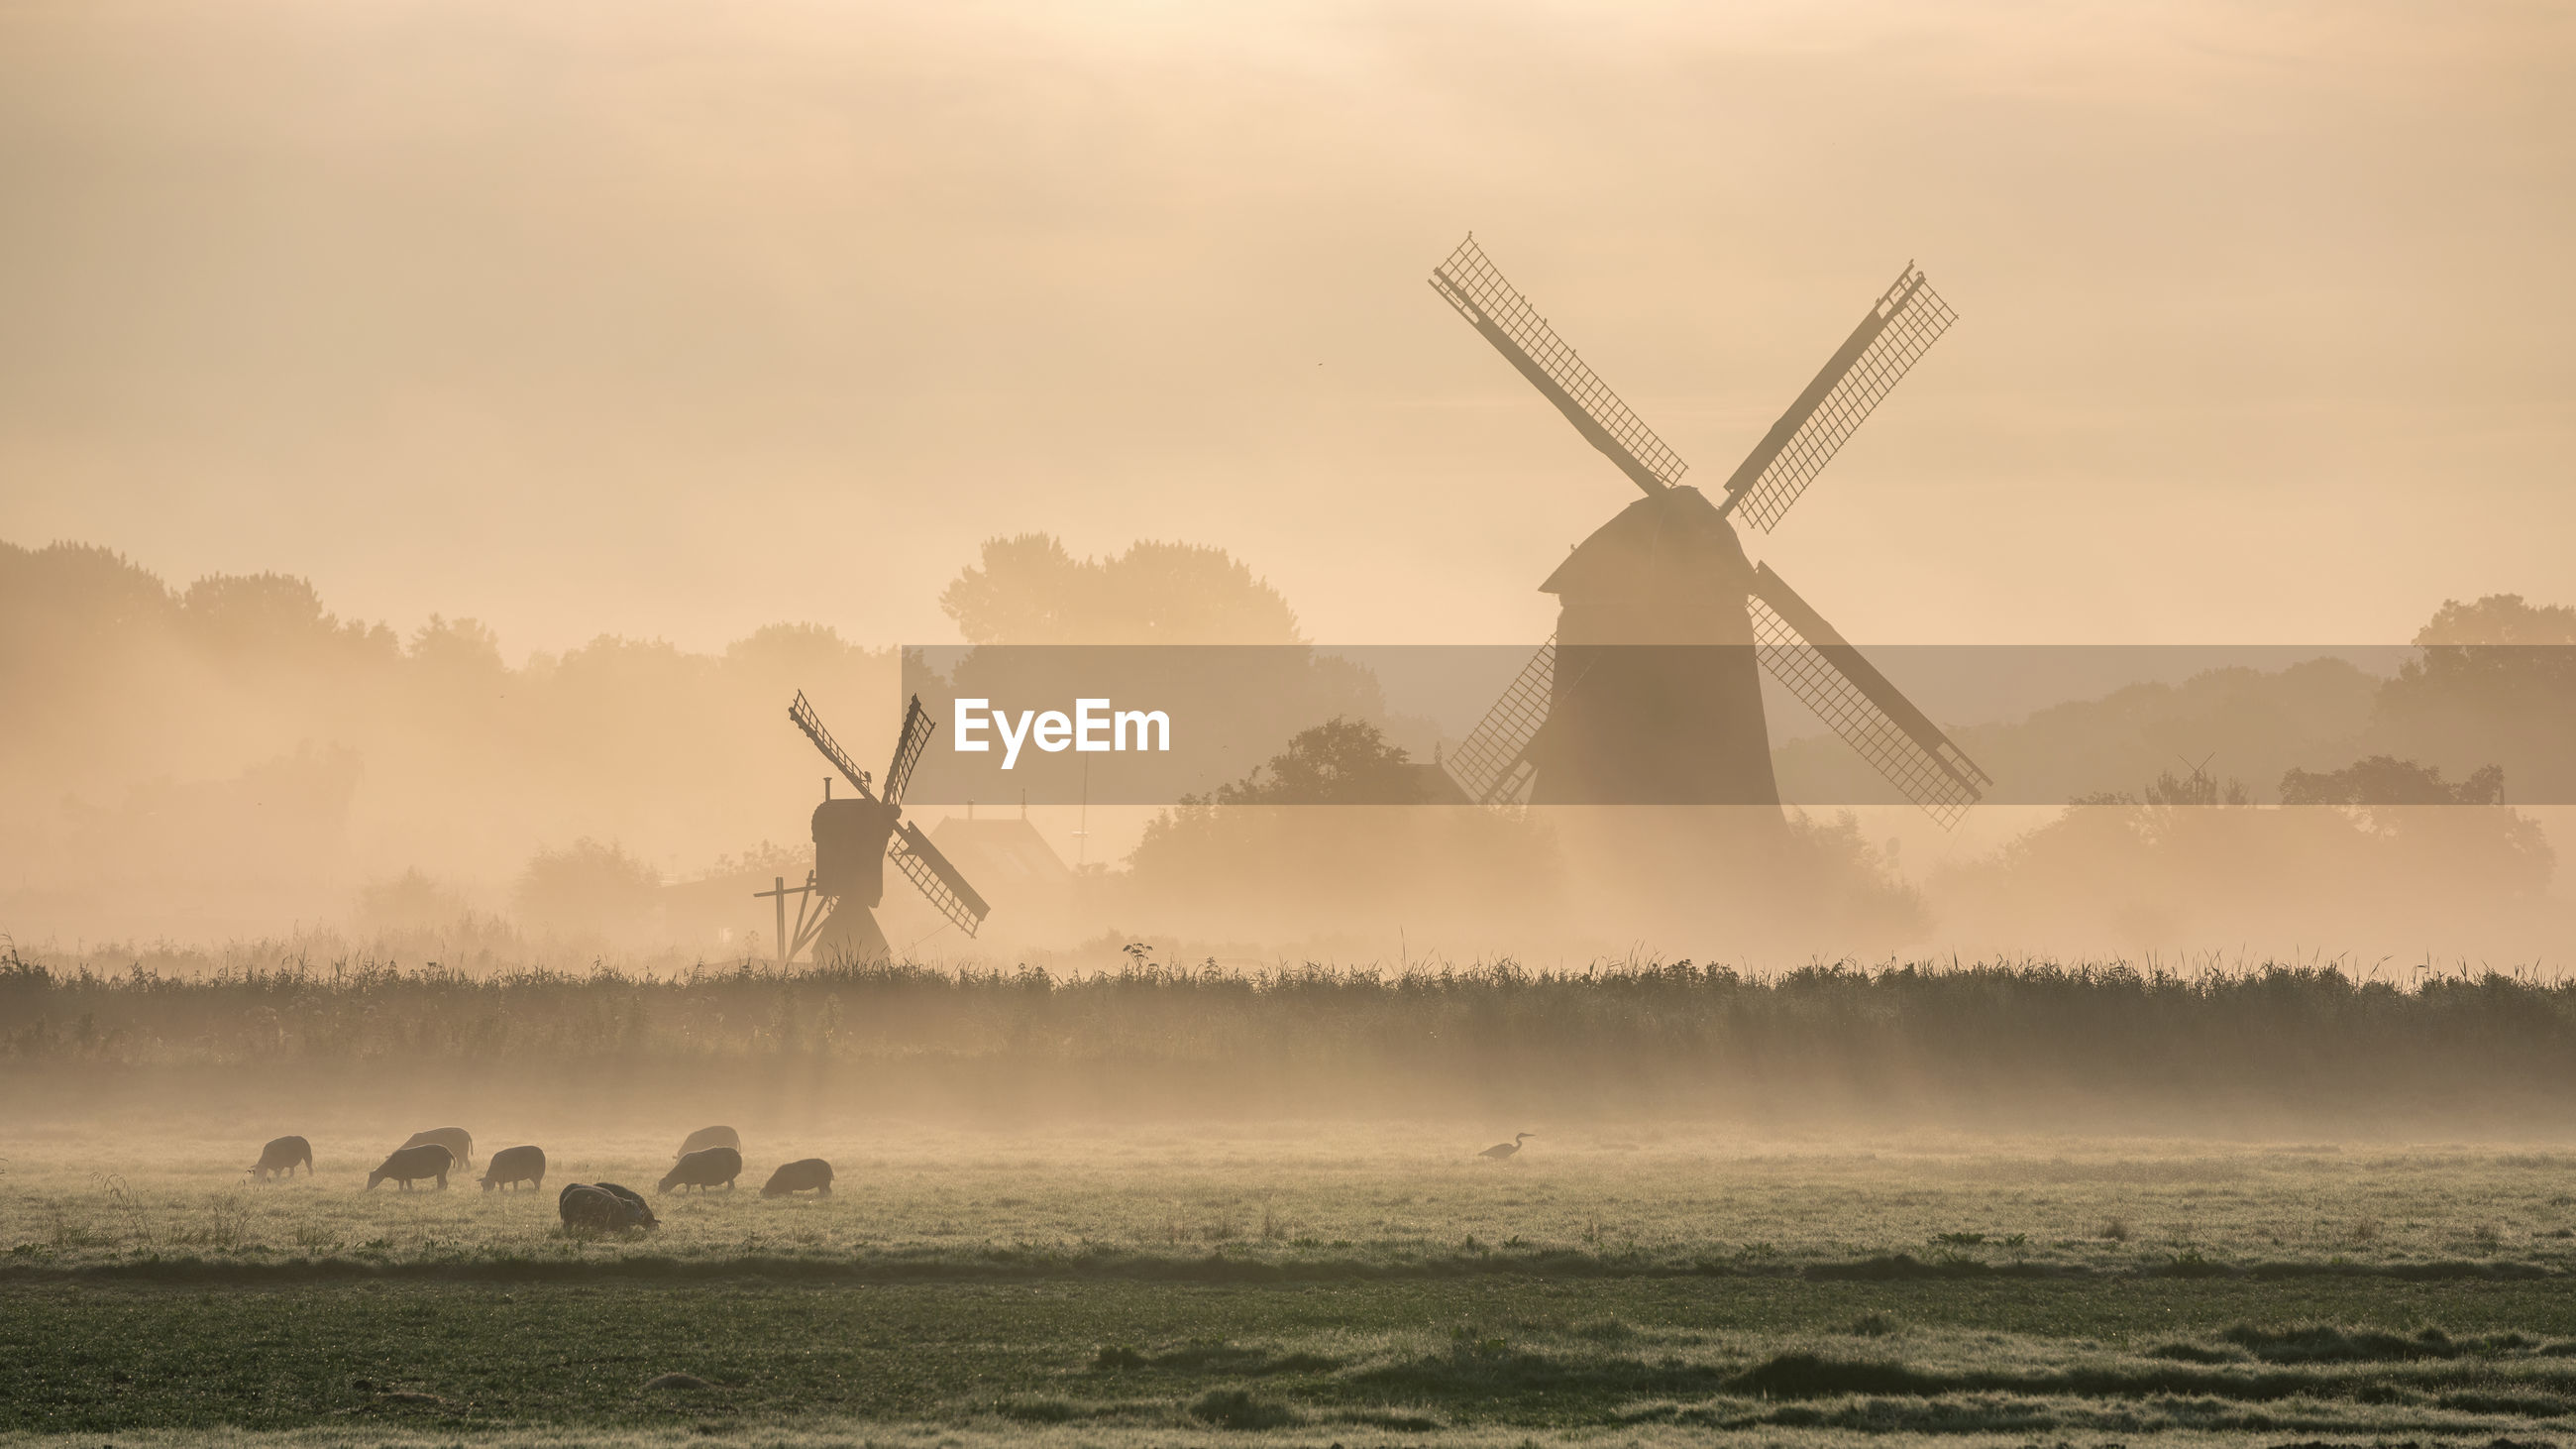 Traditional windmill on field against sky during sunrise